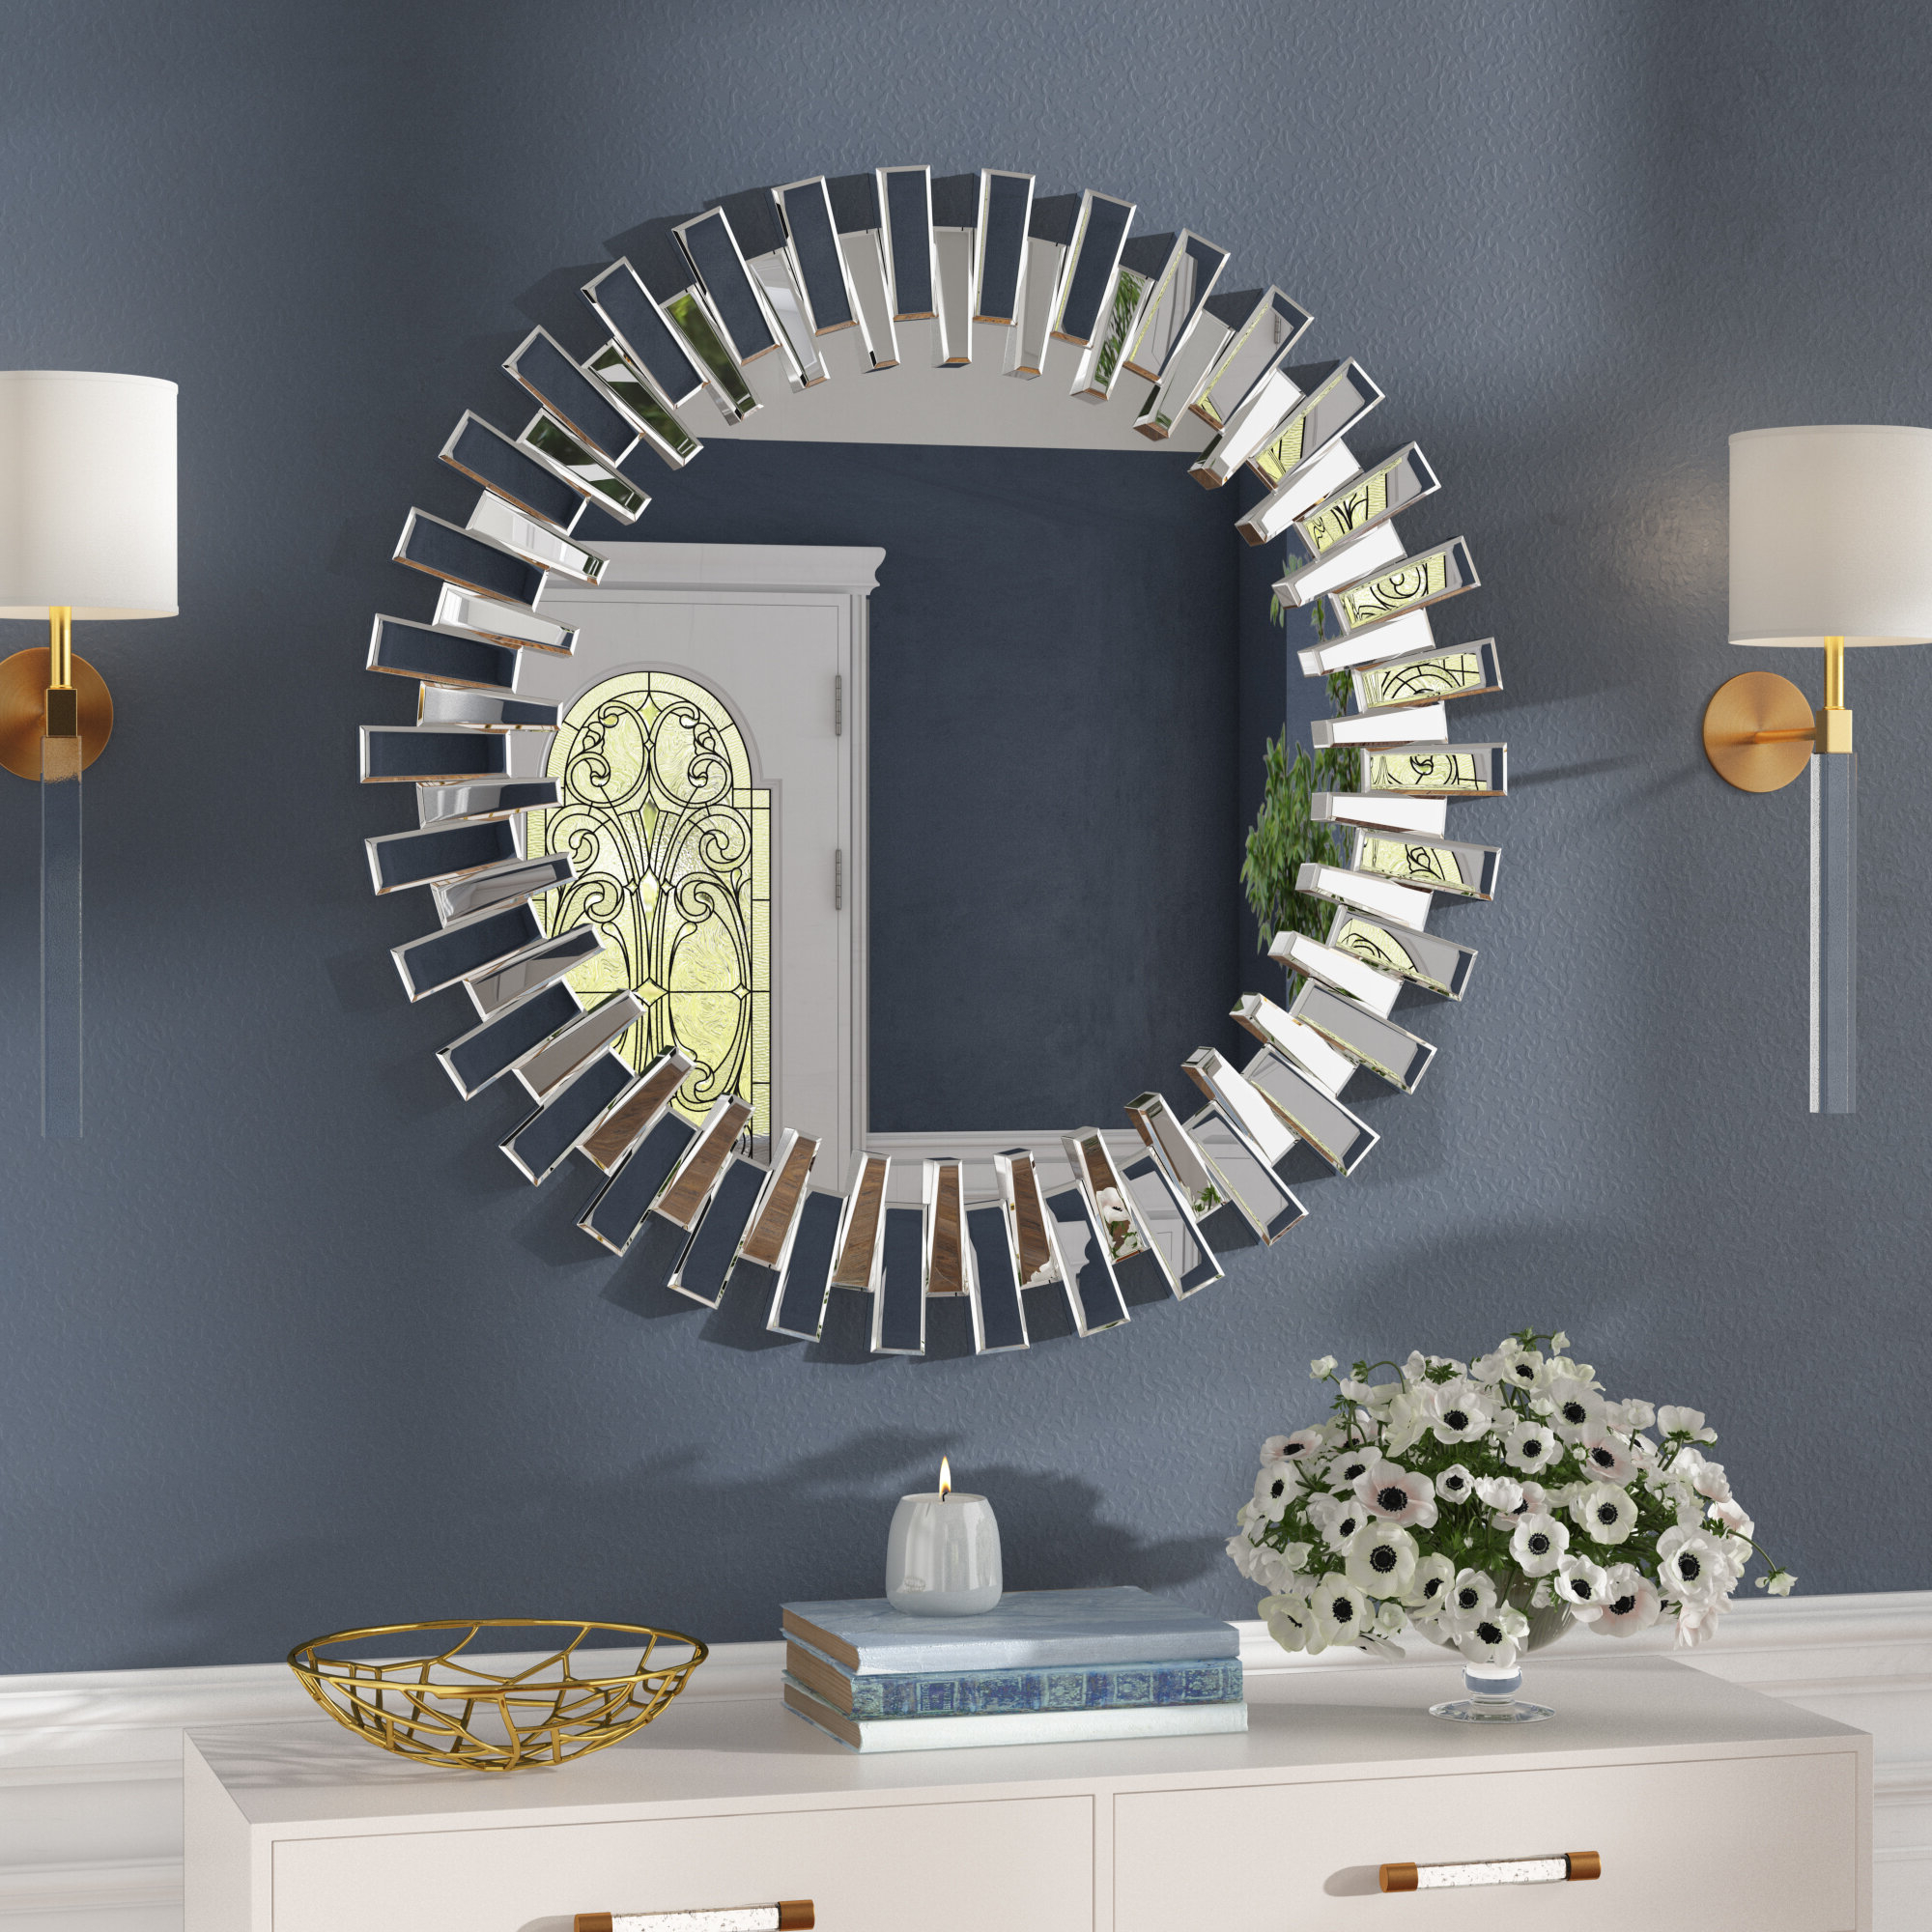 Bekey Modern & Contemporary Beveled Accent Mirror Regarding Trendy Modern & Contemporary Beveled Accent Mirrors (View 1 of 20)